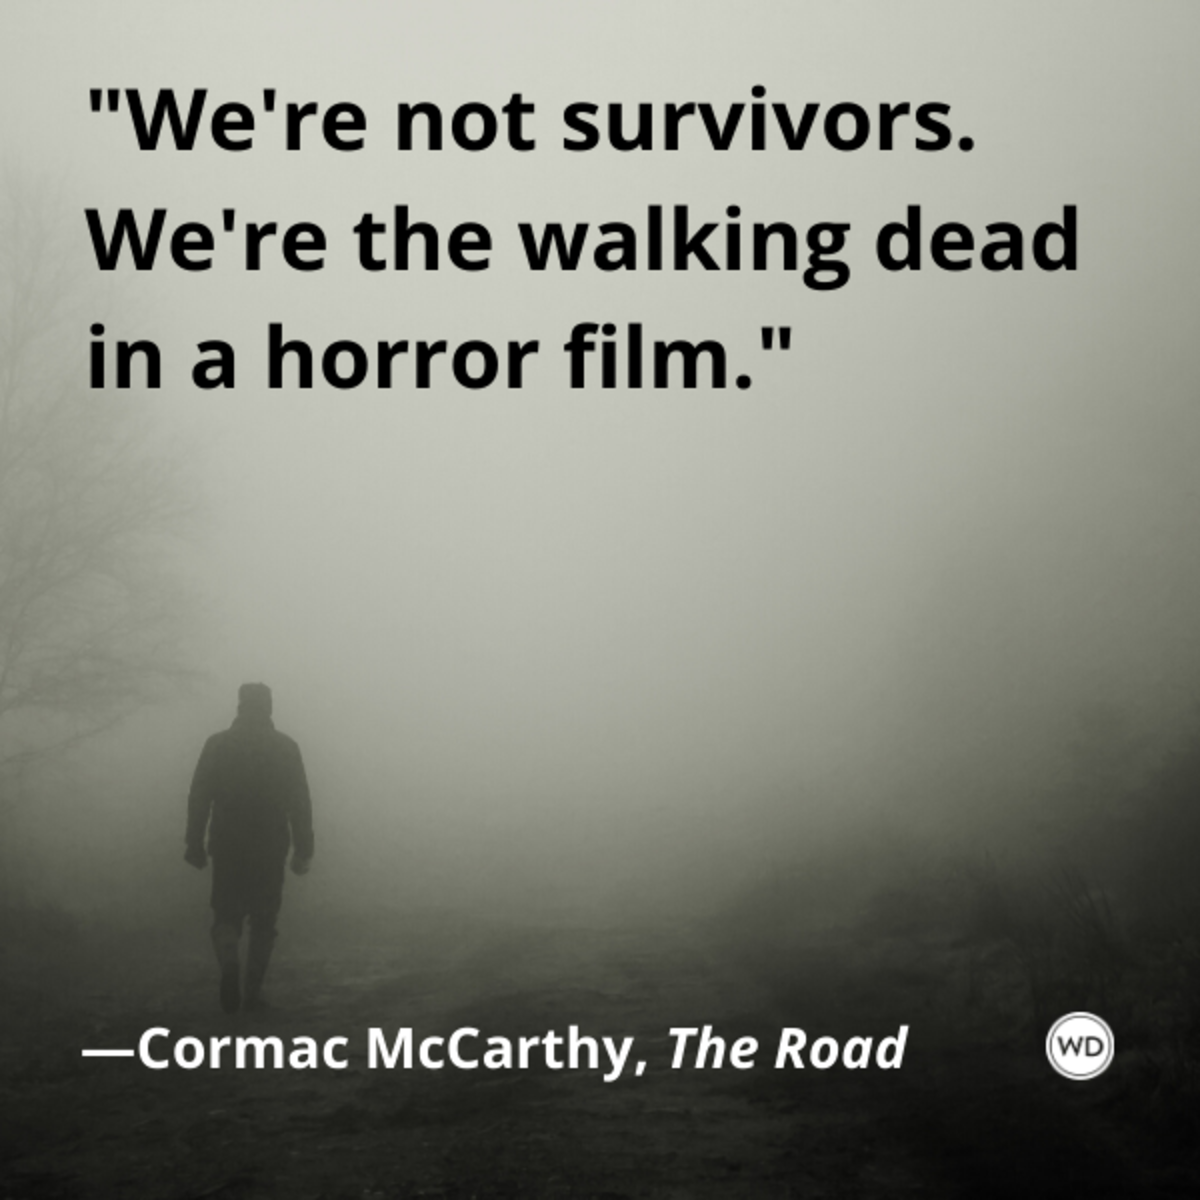 cormac_mccarthy_the_road_quotes_were_not_survivors_were_the_walking_dead_in_a_horror_film